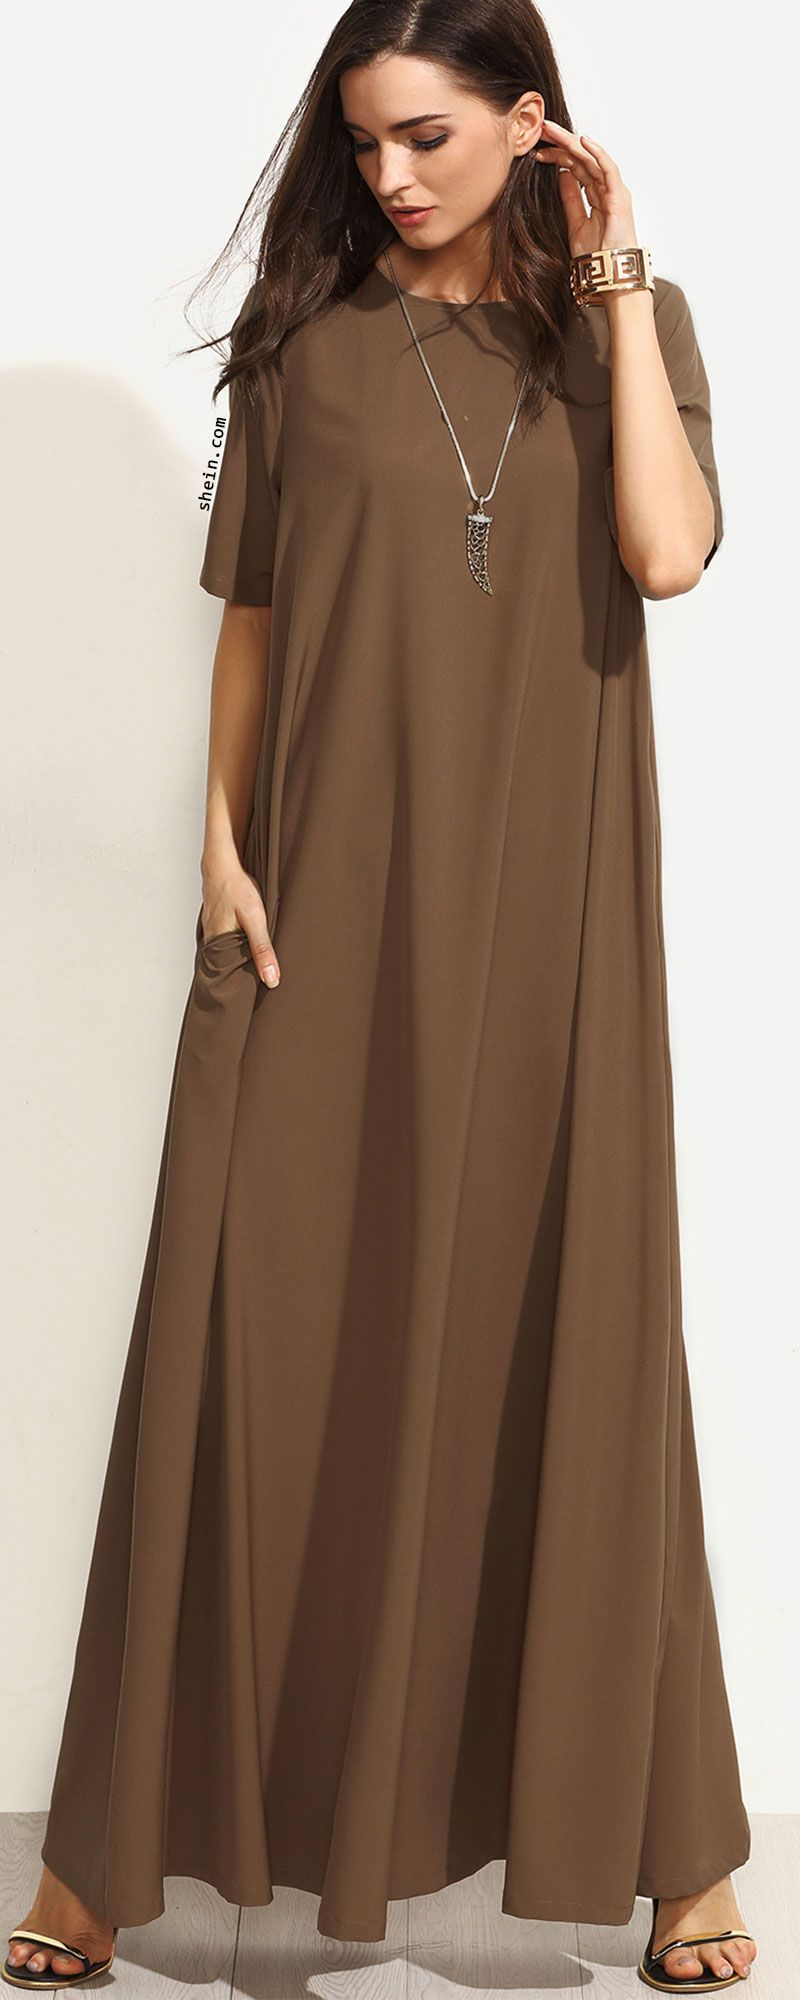 3a75f220733d Brown Short Sleeve Zipper Back Maxi Dress. Two colors available ...